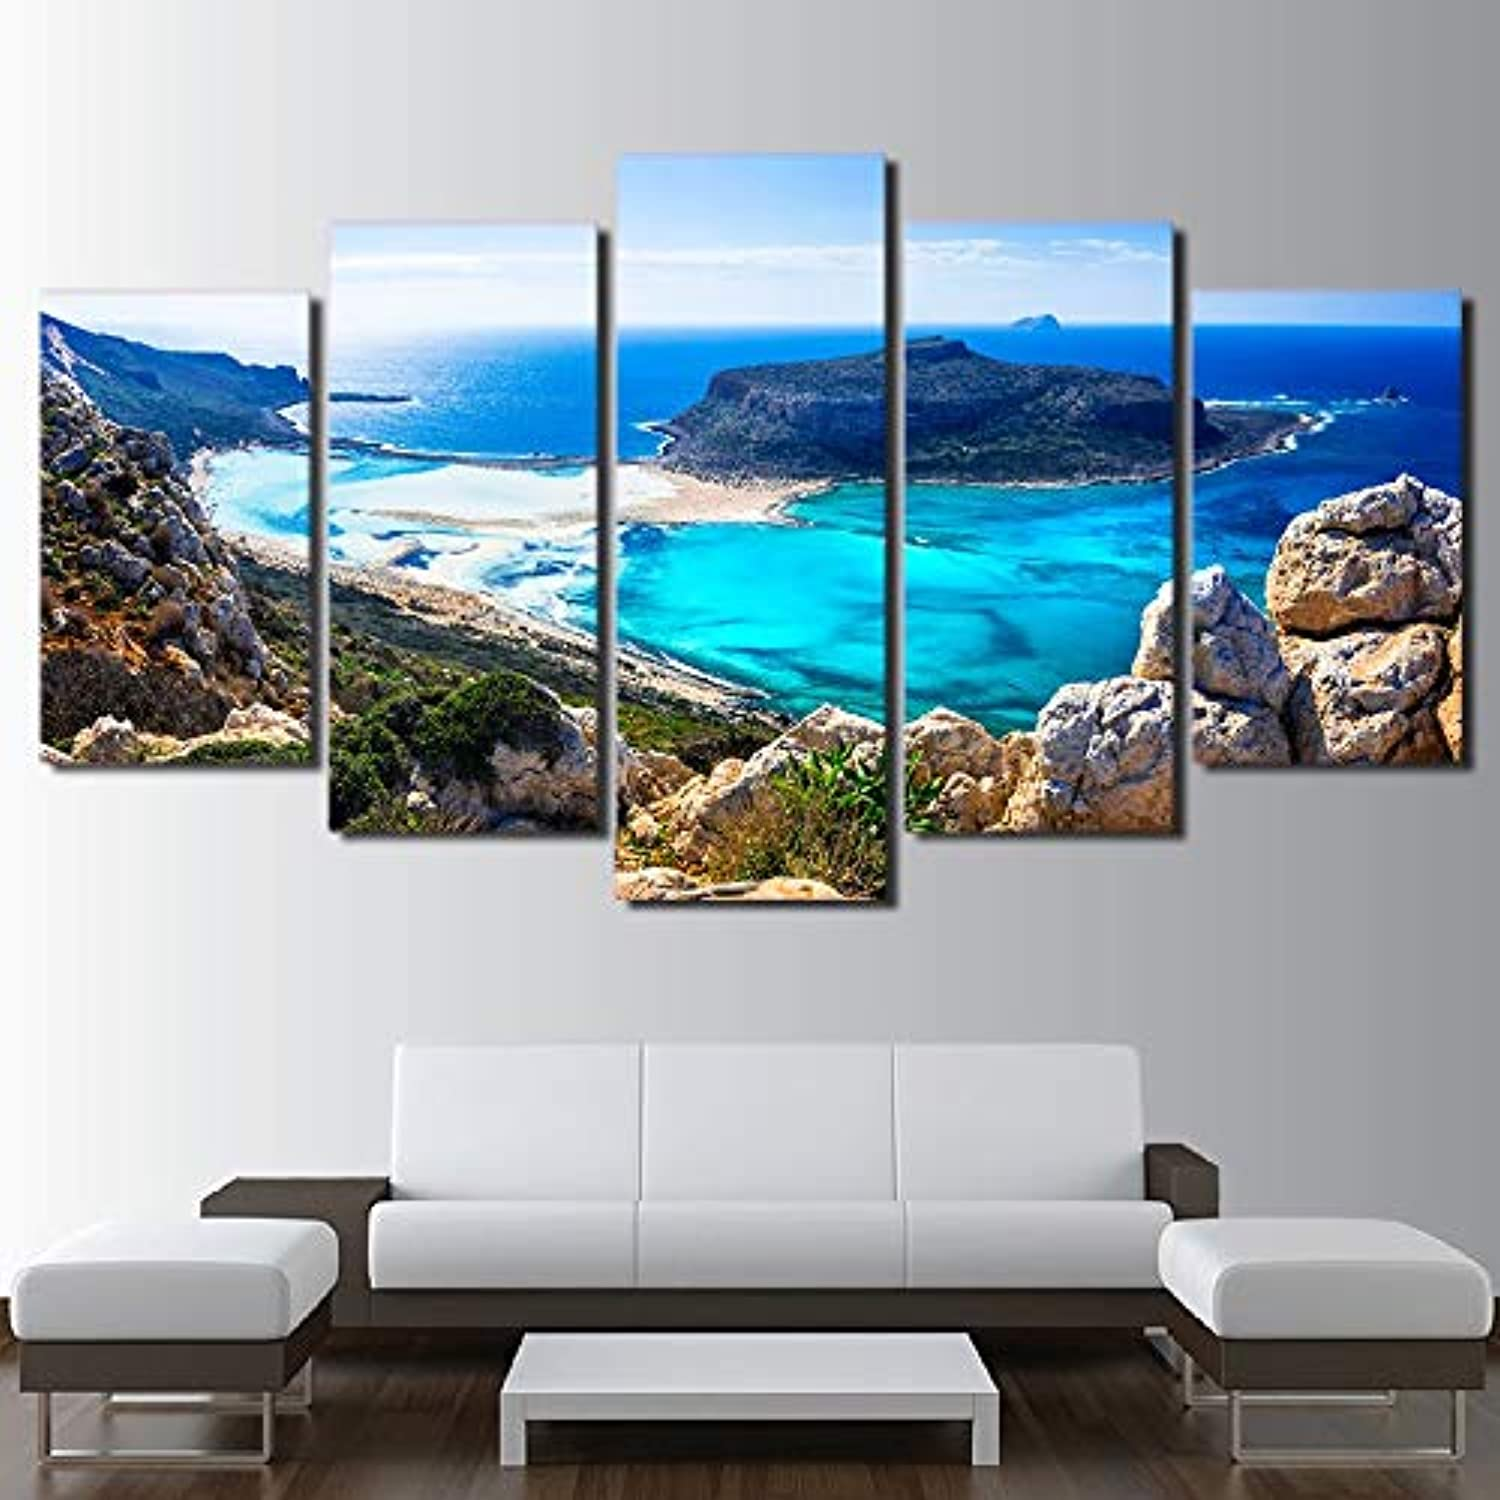 HD Printed for Living Room Picture 5 Panel bluee sea Beach Island Home Decor Framework Canvas Painting Poster